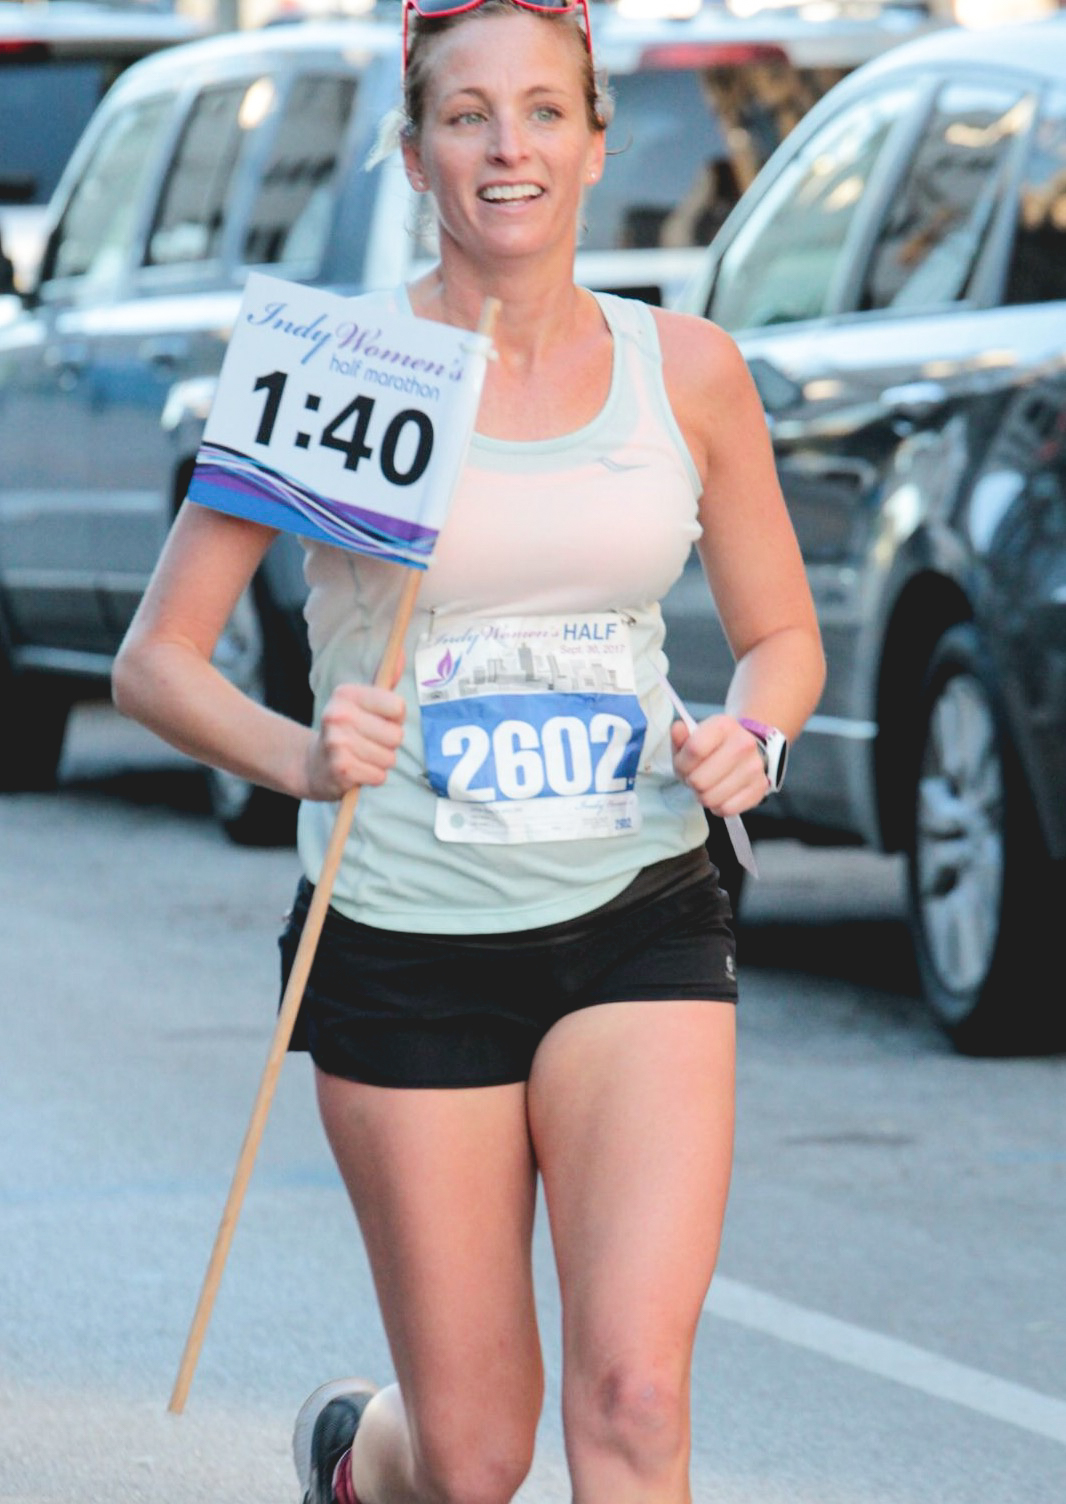 Episode 32: Lindsey Hein, I'll Have Another -